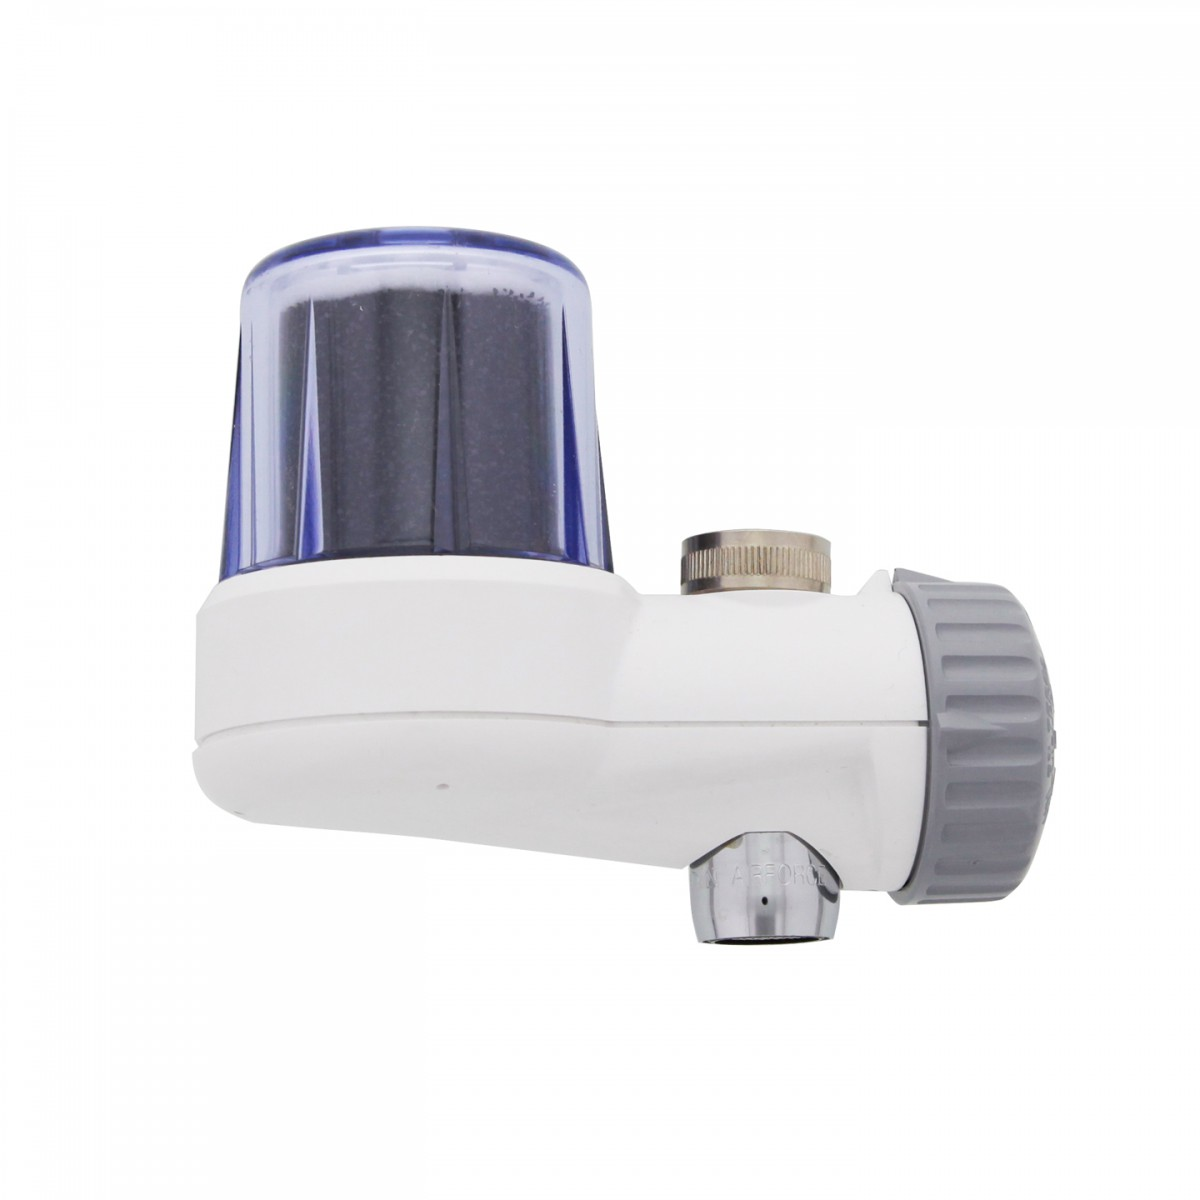 Faucet Water Filter Systems - DiscountFilterStore.com